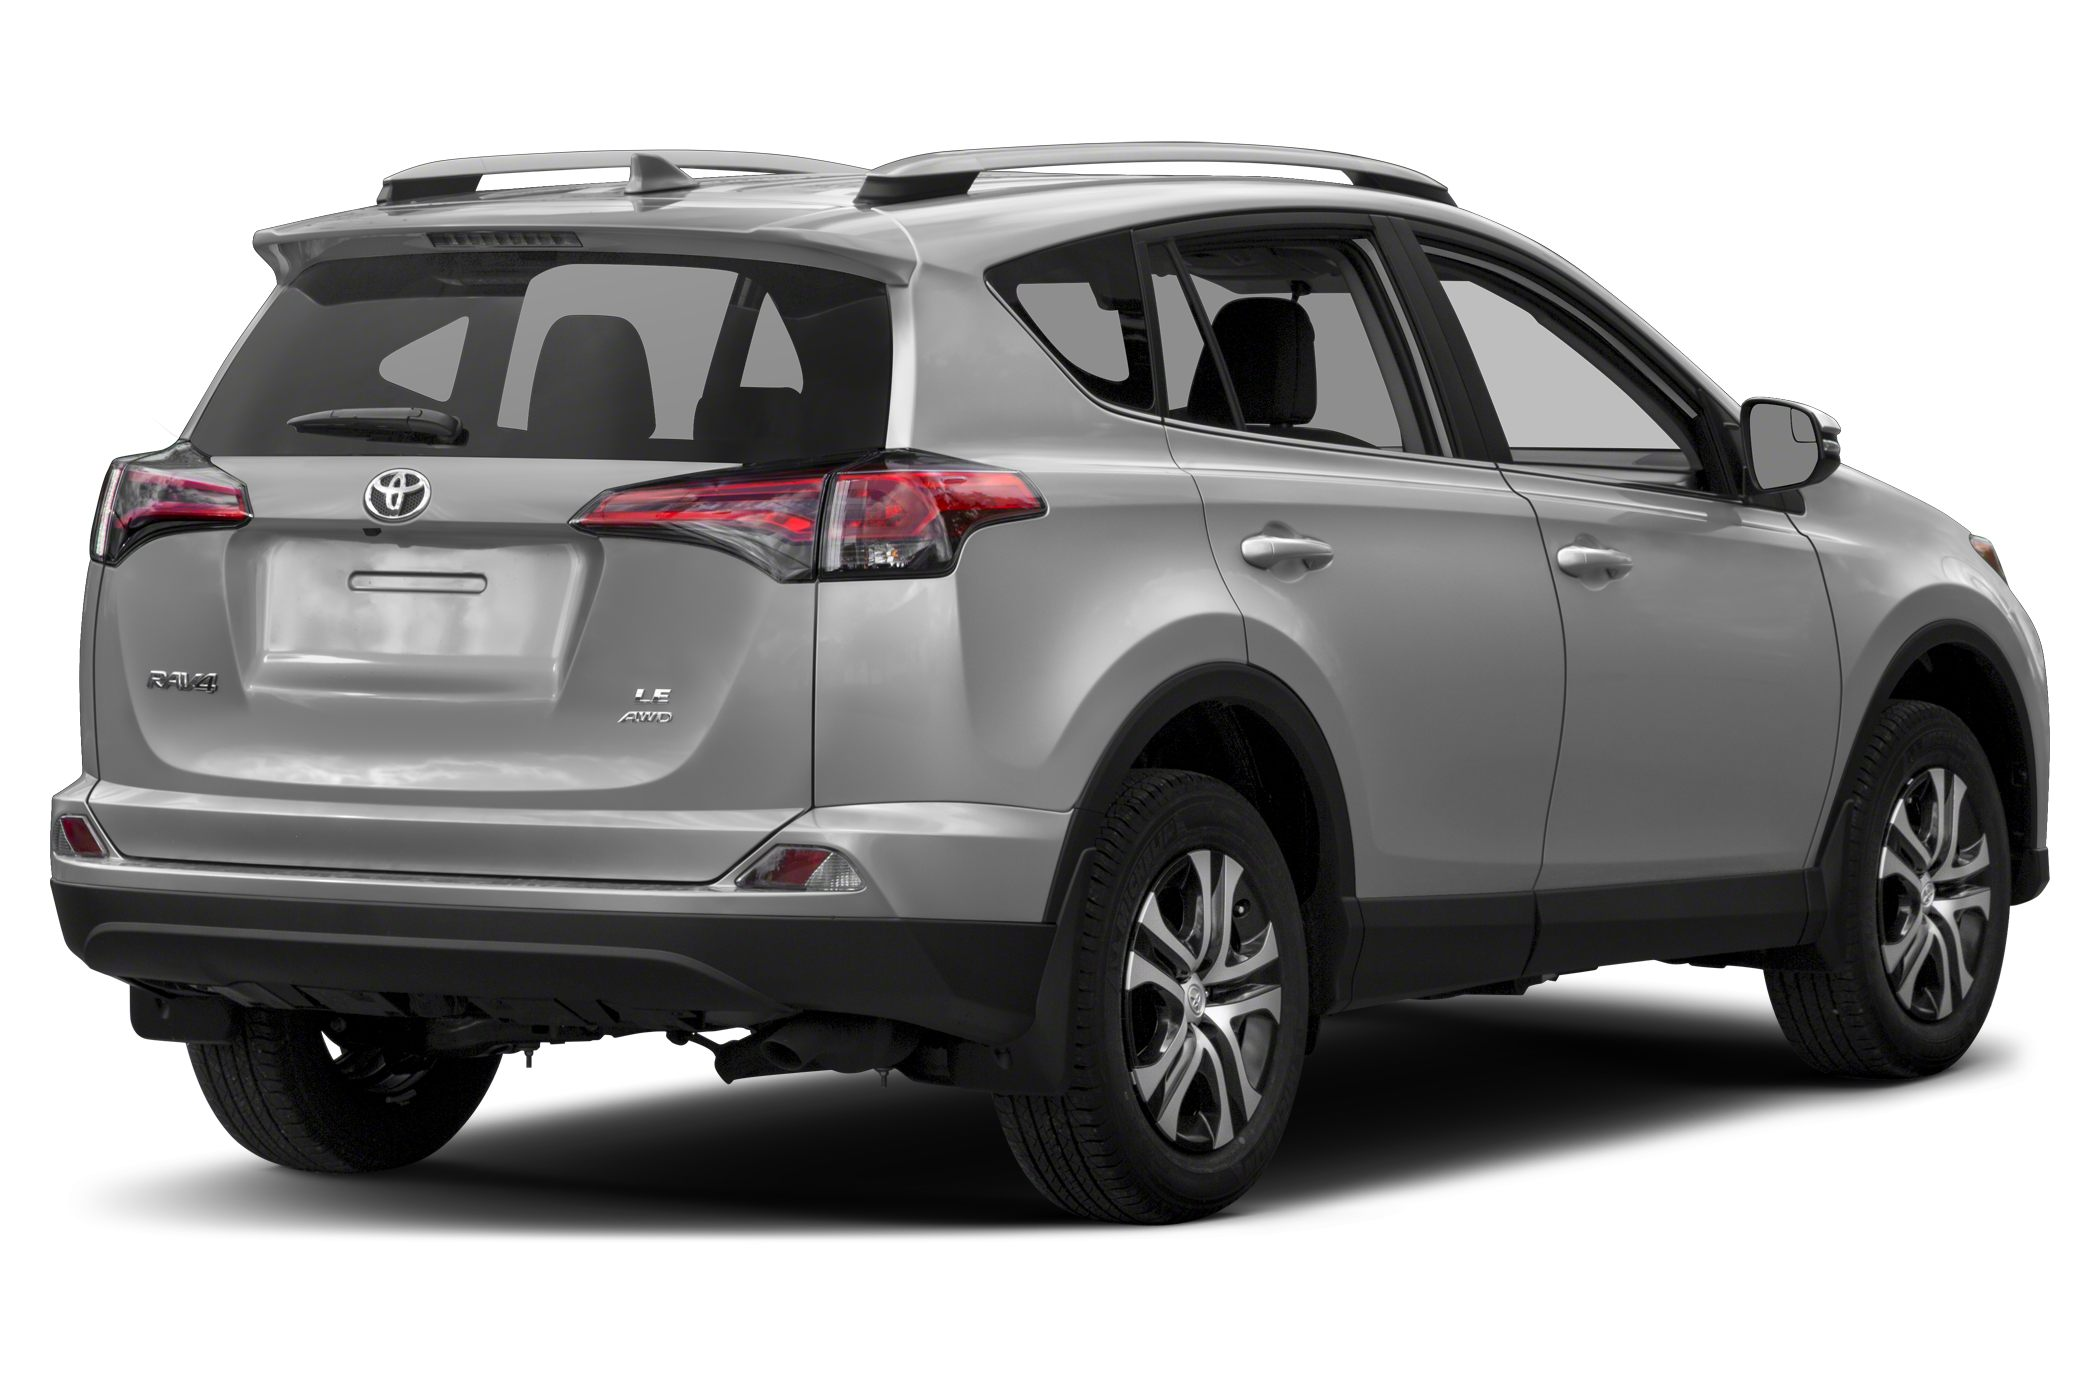 2018 Toyota RAV4 Deals, Prices, Incentives & Leases ...